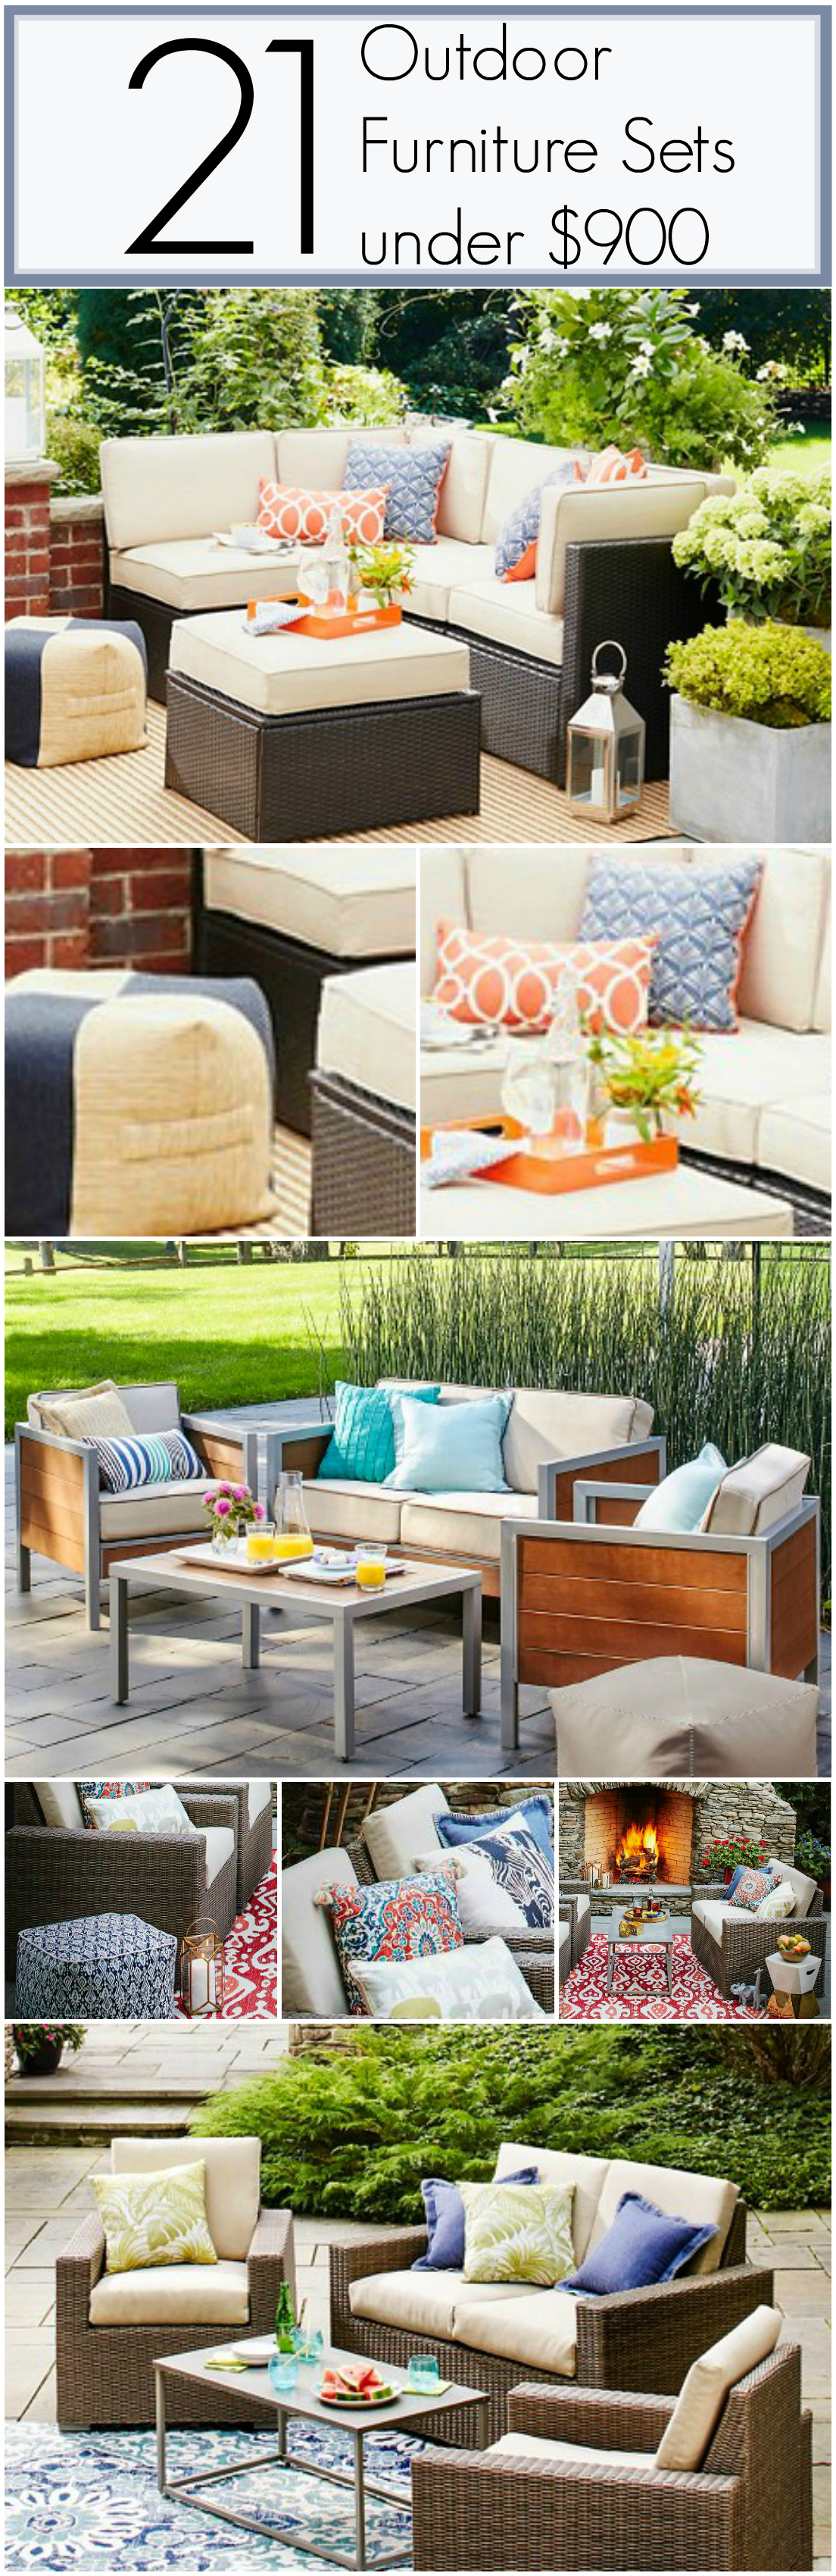 21 Inexpensive Outdoor Furniture Sets all under $900. Most of these are under $700!